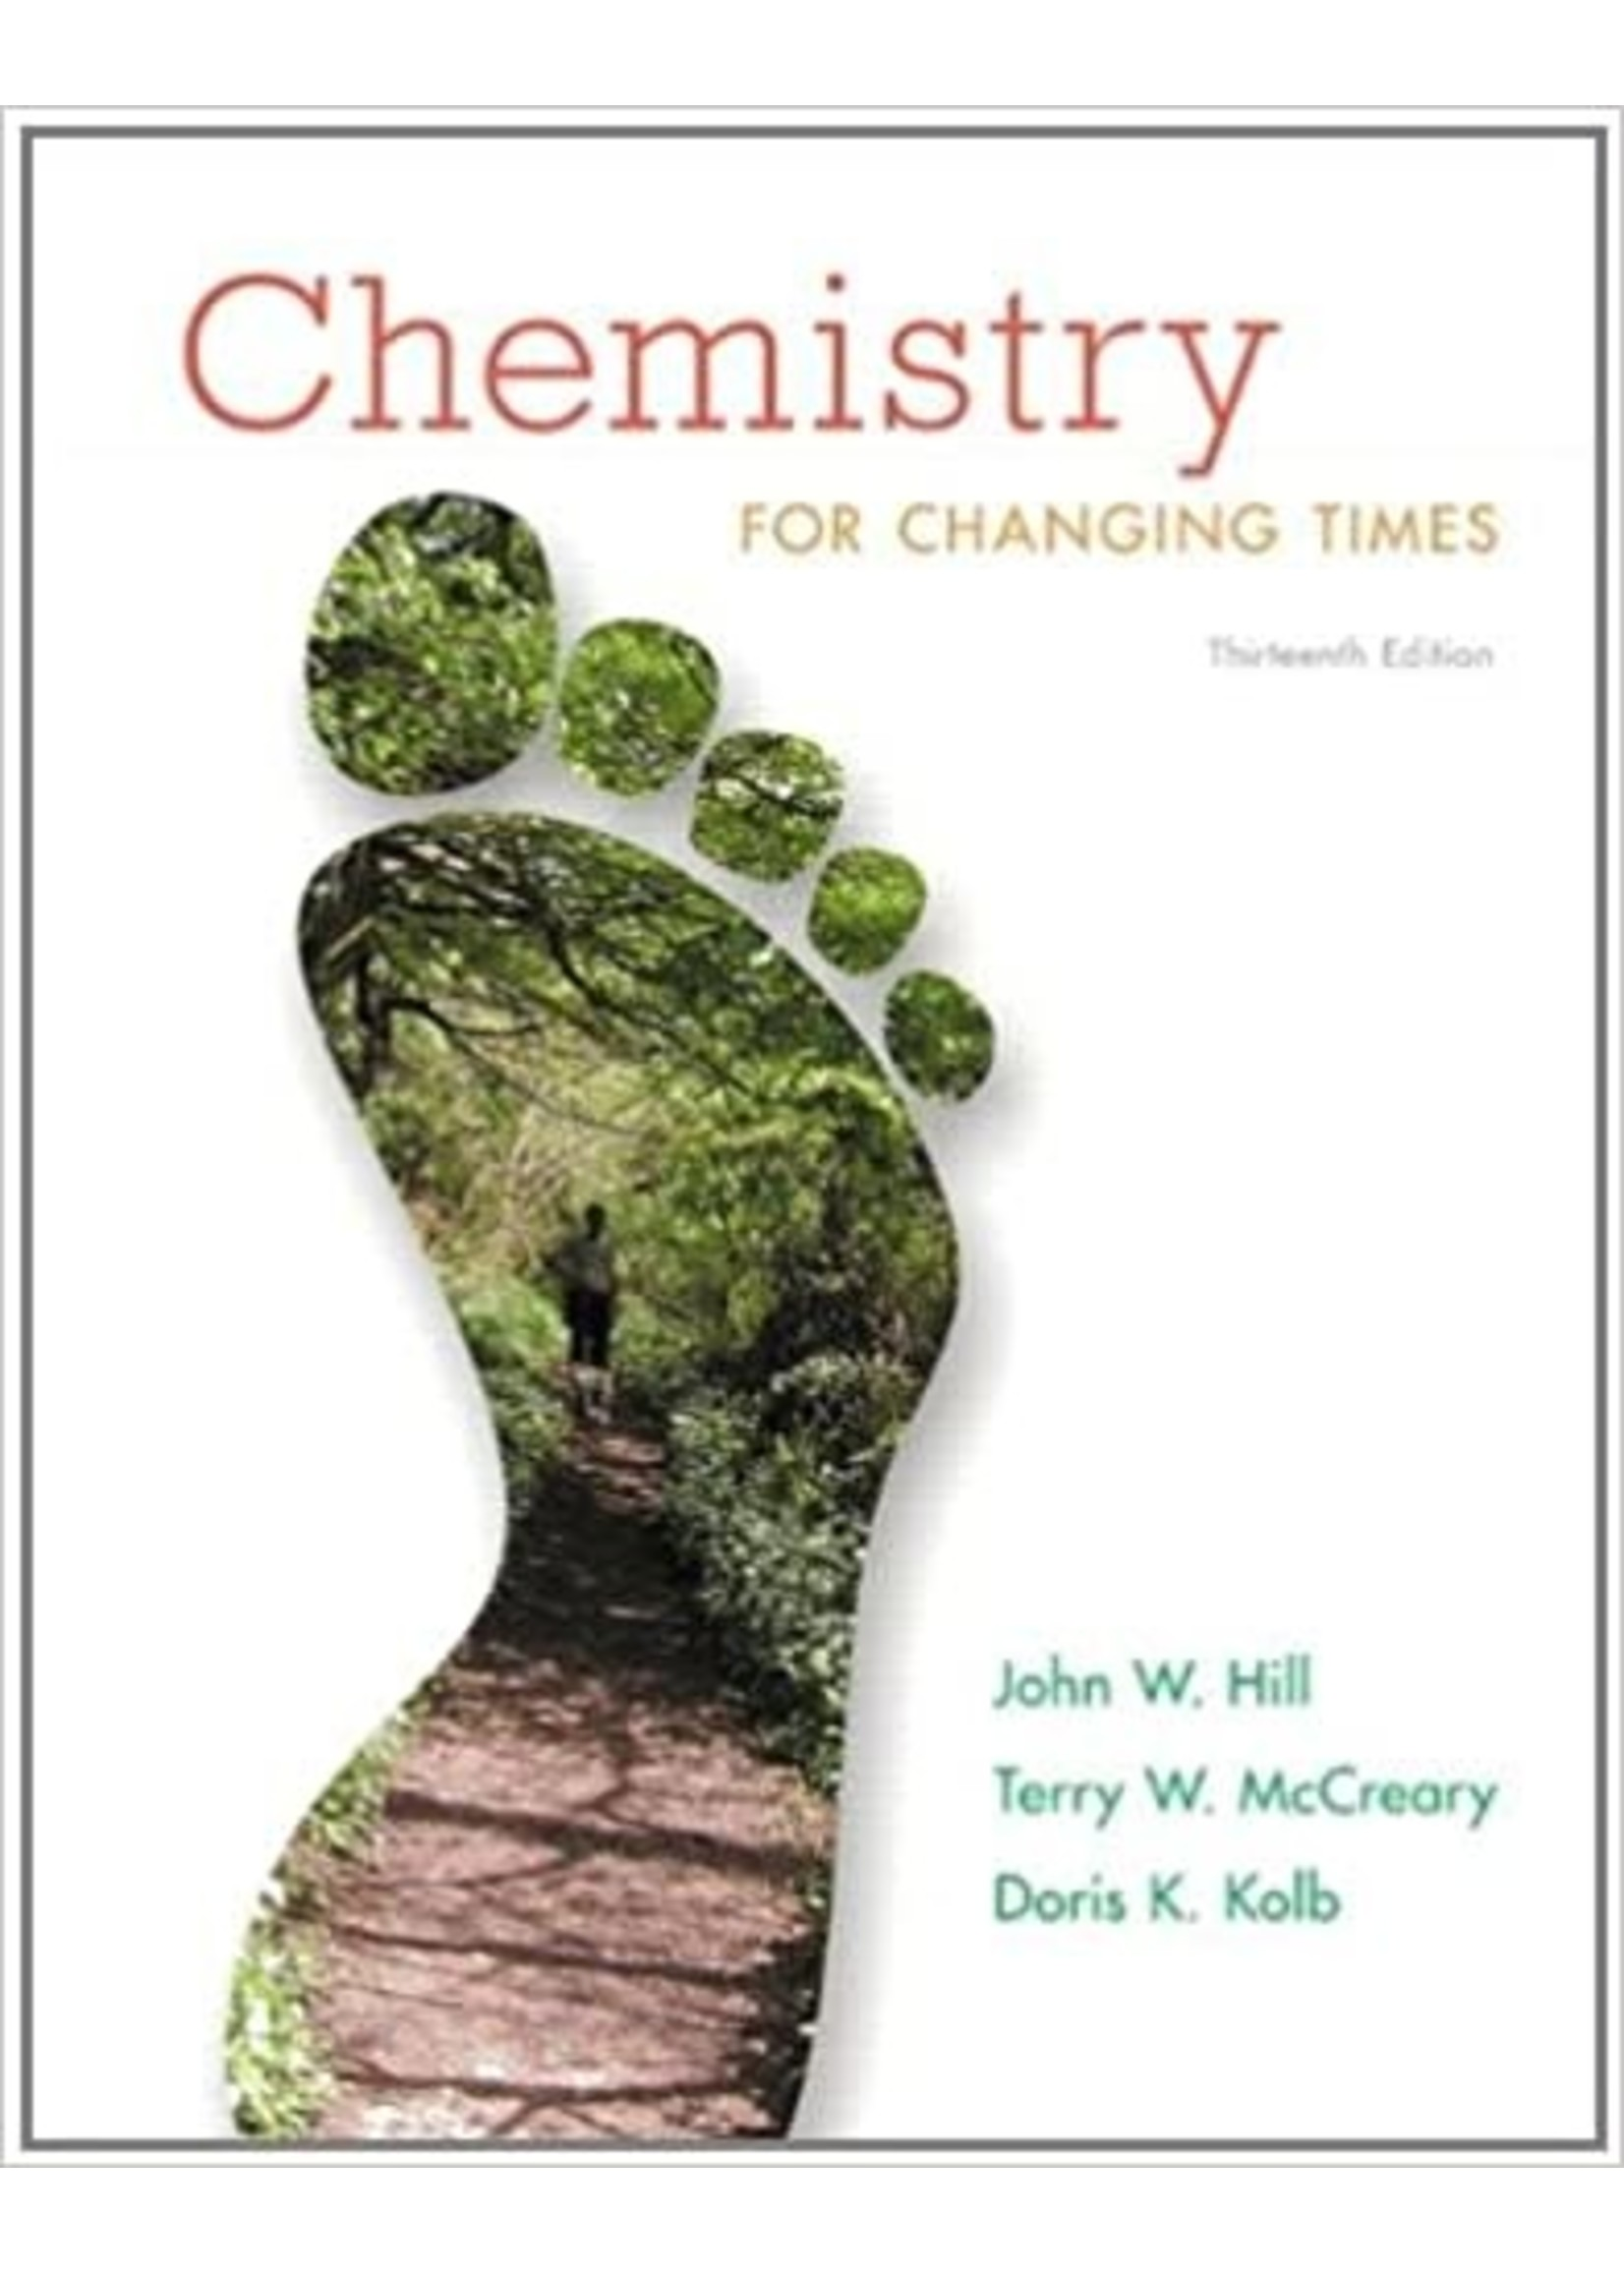 CHEM100 HILL CHEMISTRY FOR THE CHANGING TIMES